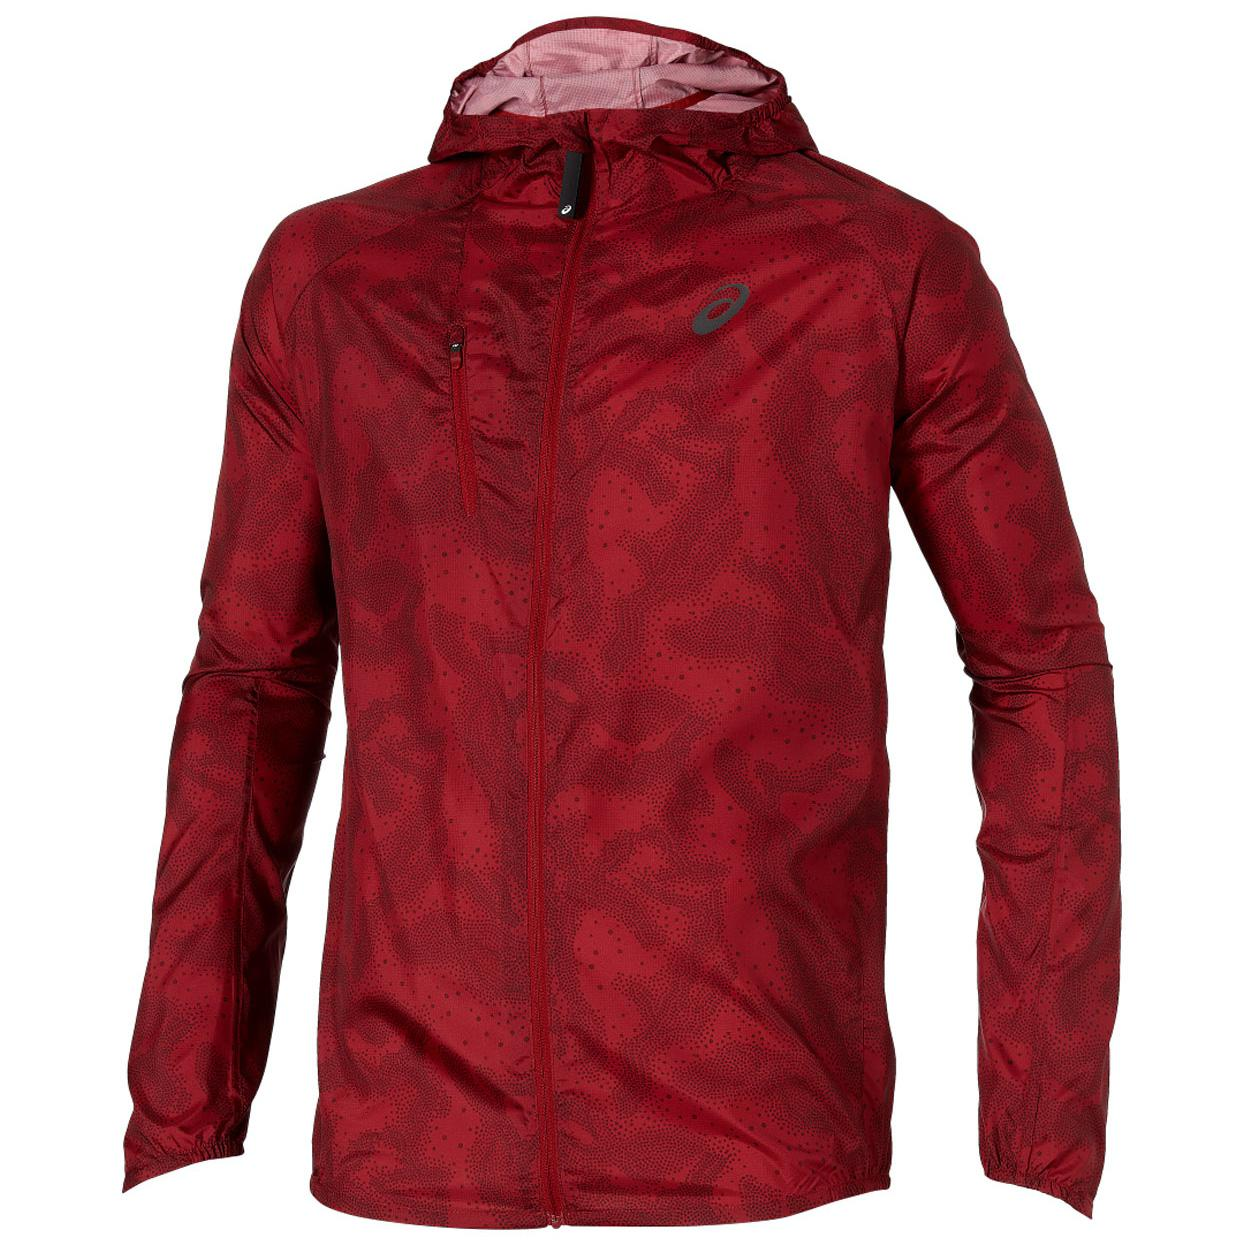 asics running jacket mens red